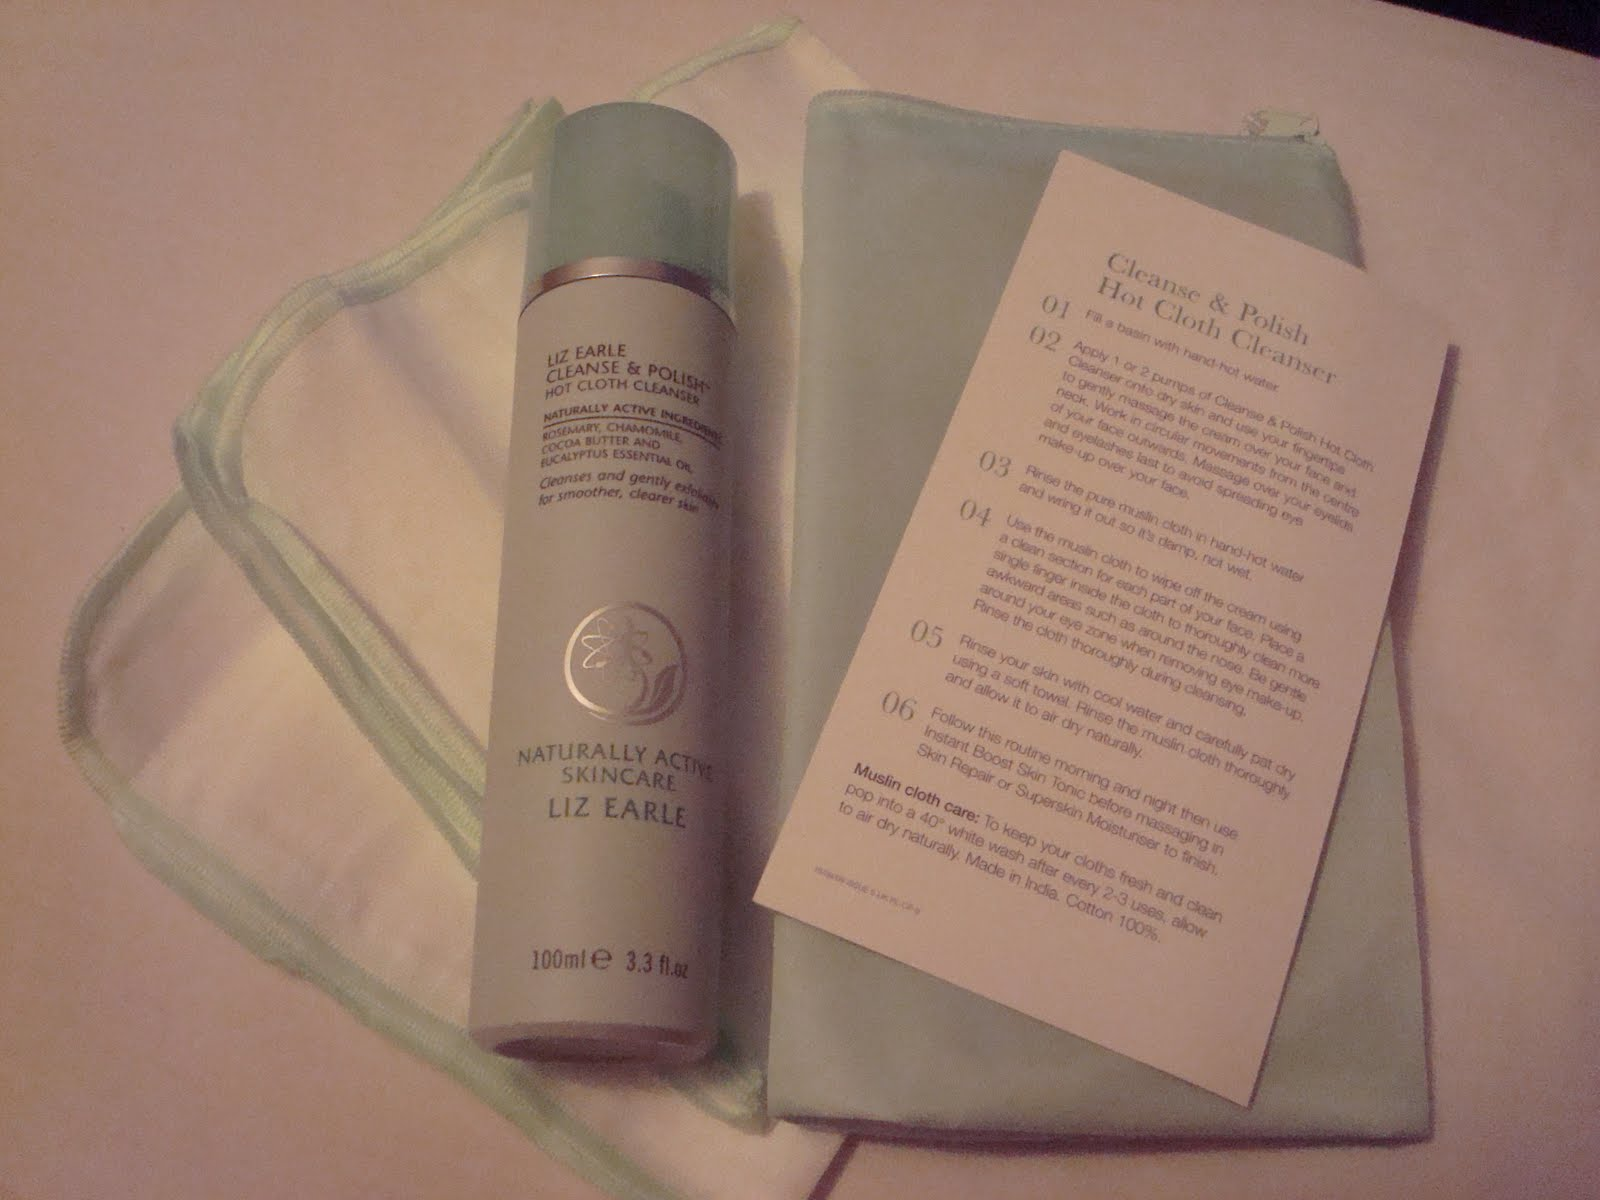 Liz Earle Cleanse And Polish Hot Cloth Cleanser Review